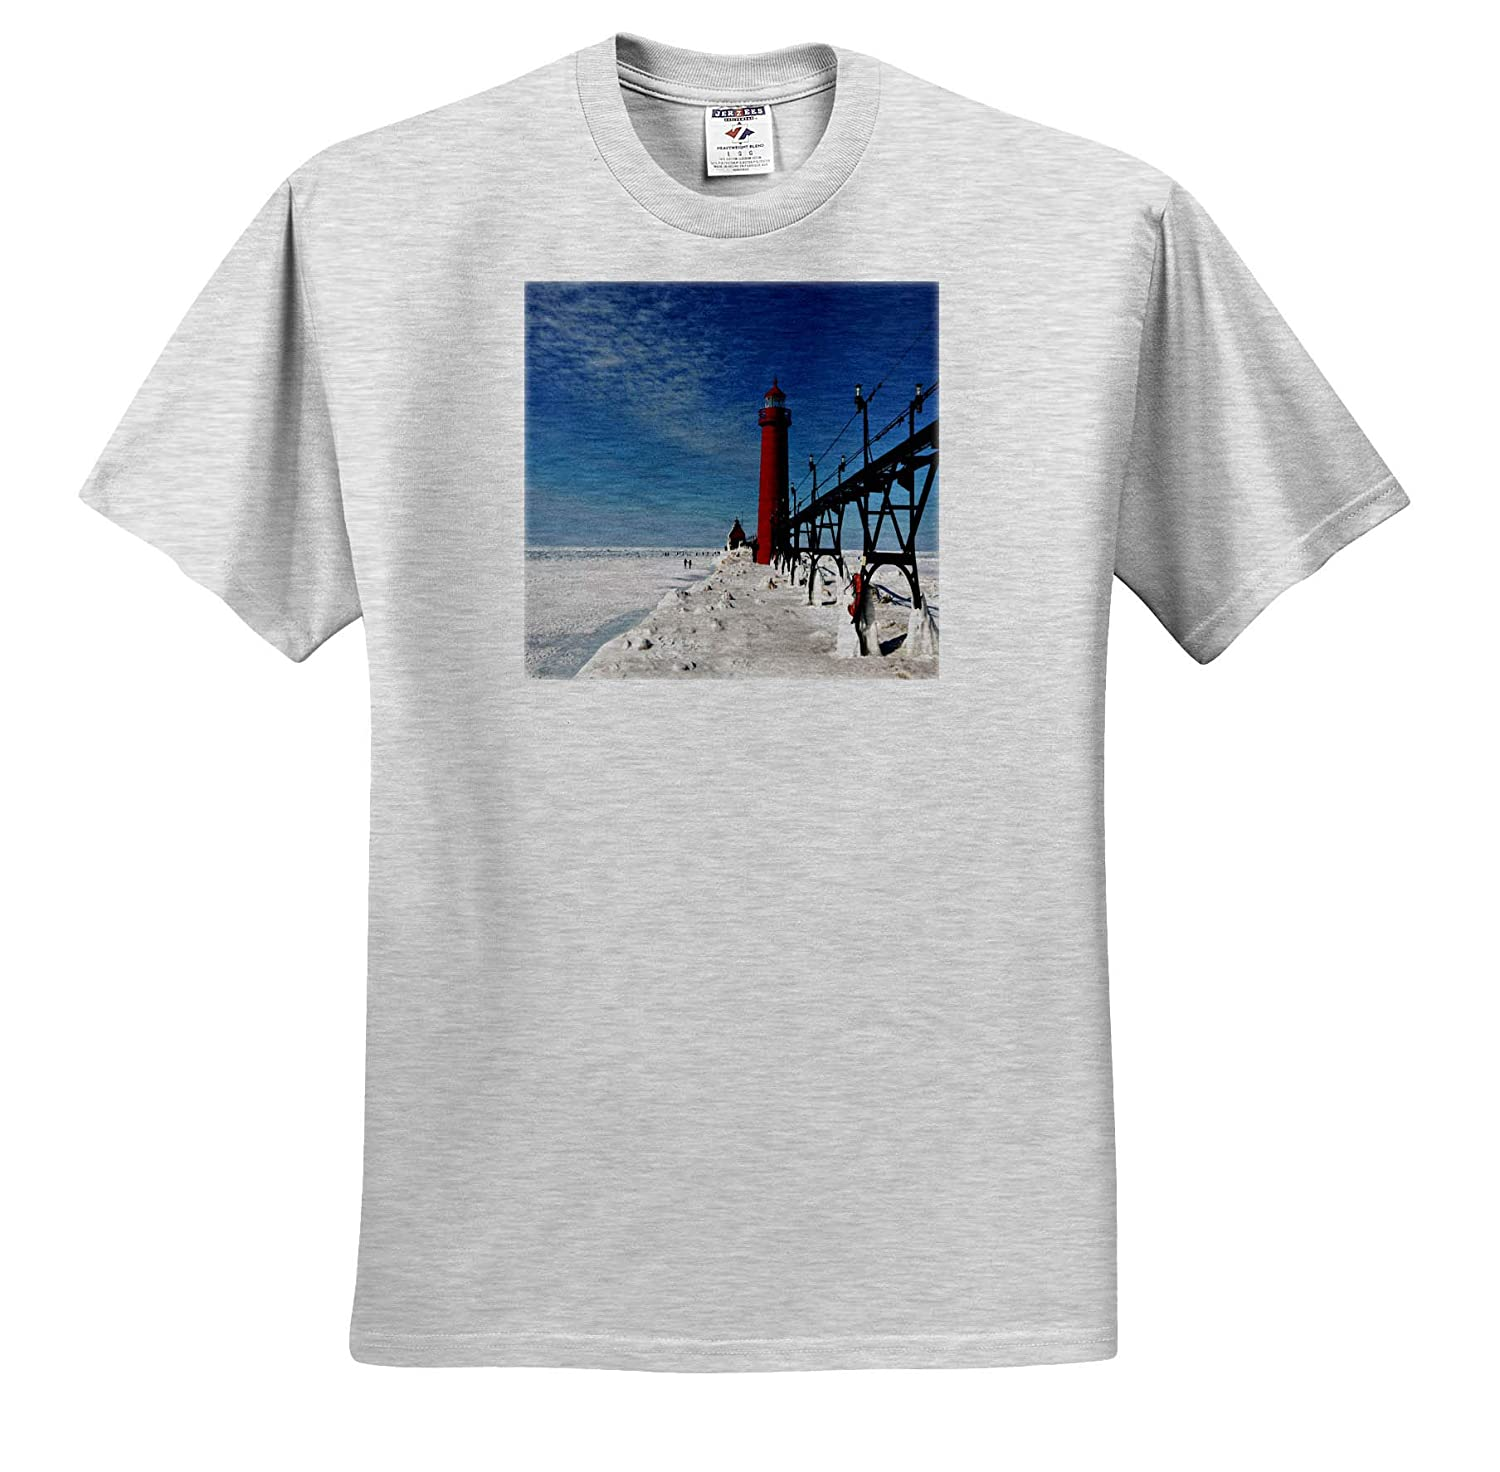 Adult T-Shirt XL Grand Haven Michigan Lighthouse and Ice House Scenery 3dRose Dreamscapes by Leslie ts/_314258